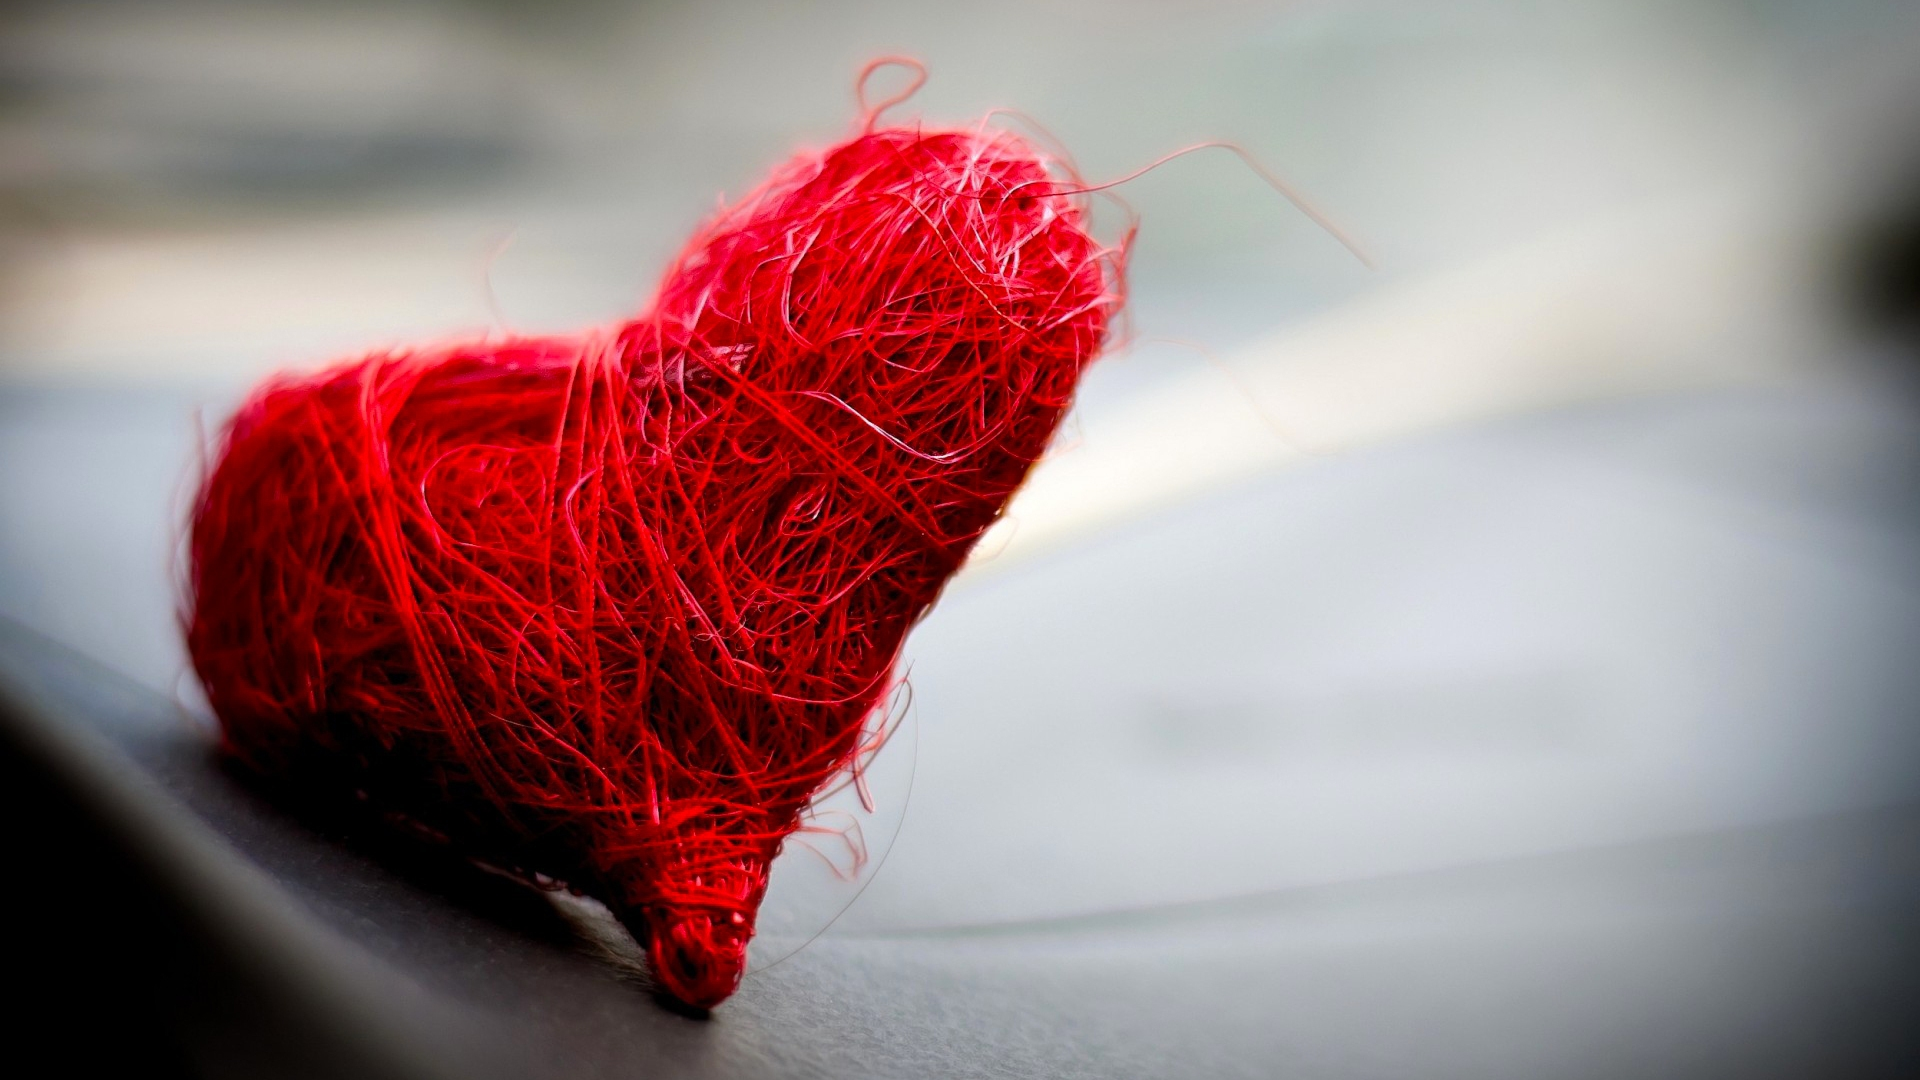 A heart made of red thread